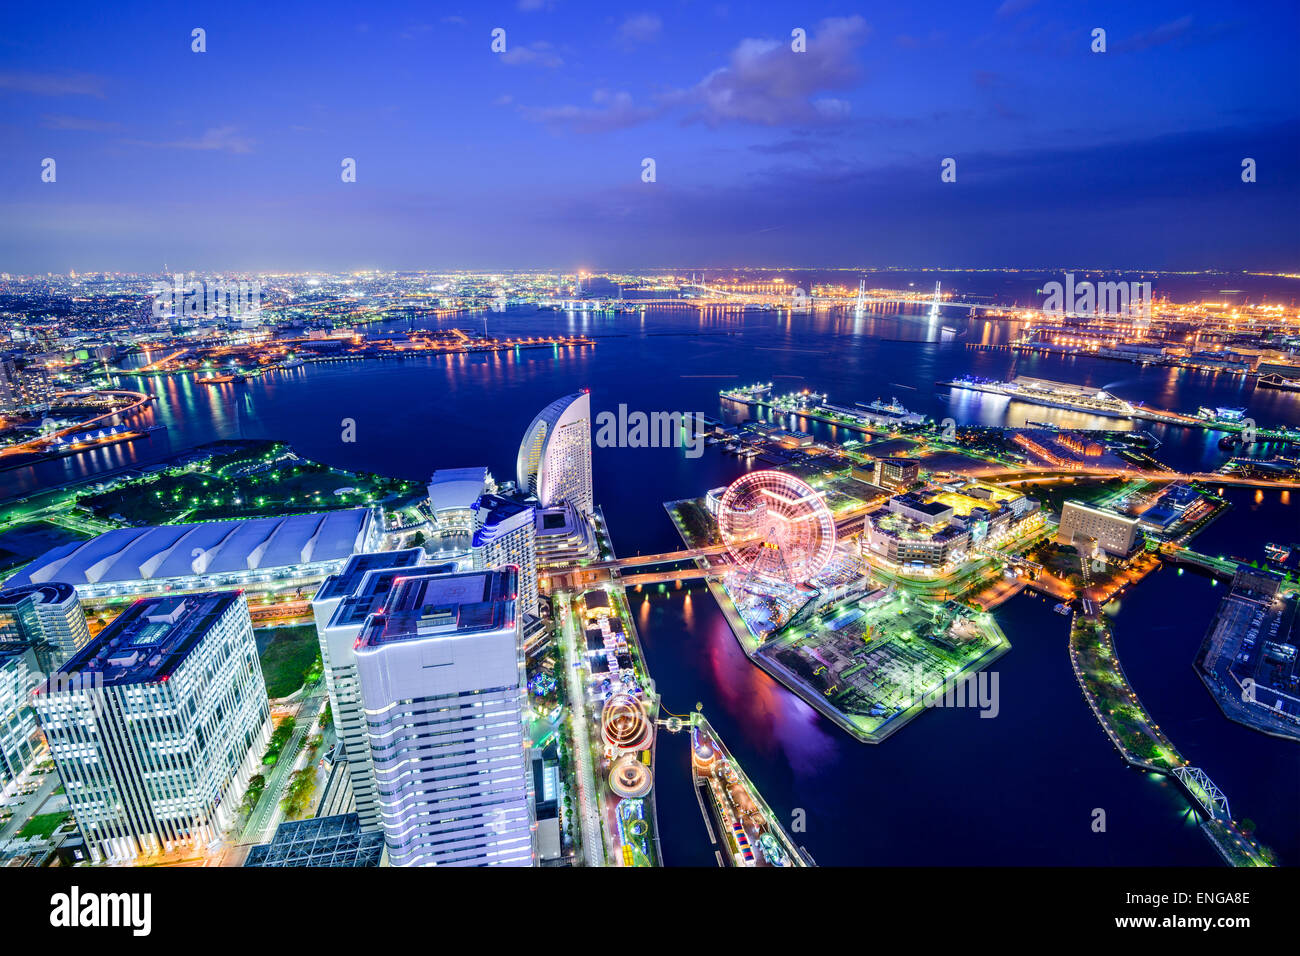 Yokohama, Japan aerial view at Minato Mirai waterfront district. Stock Photo